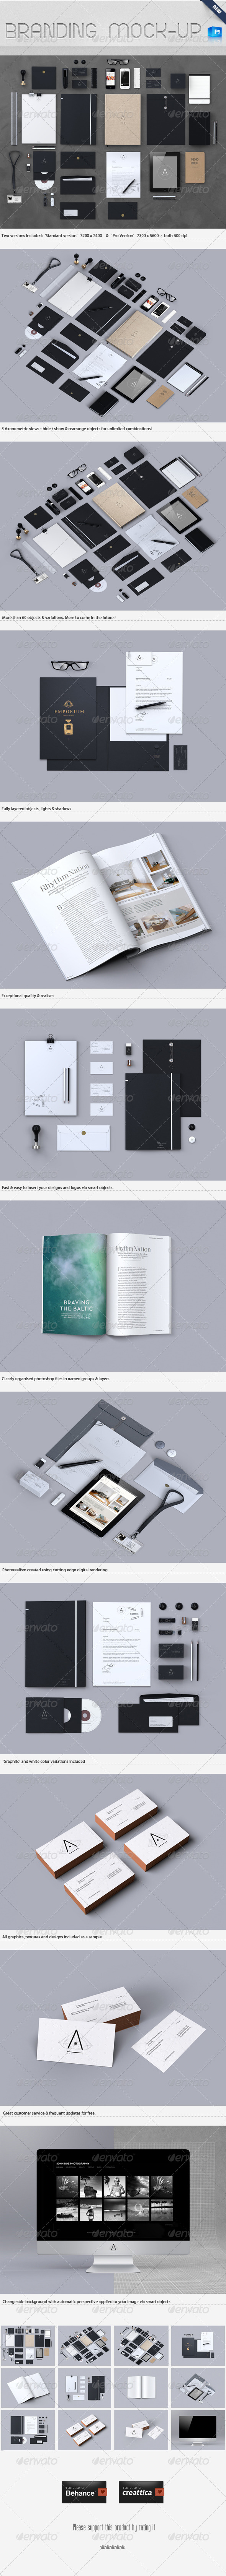 GraphicRiver Stationery Branding Mock-Up 4367980